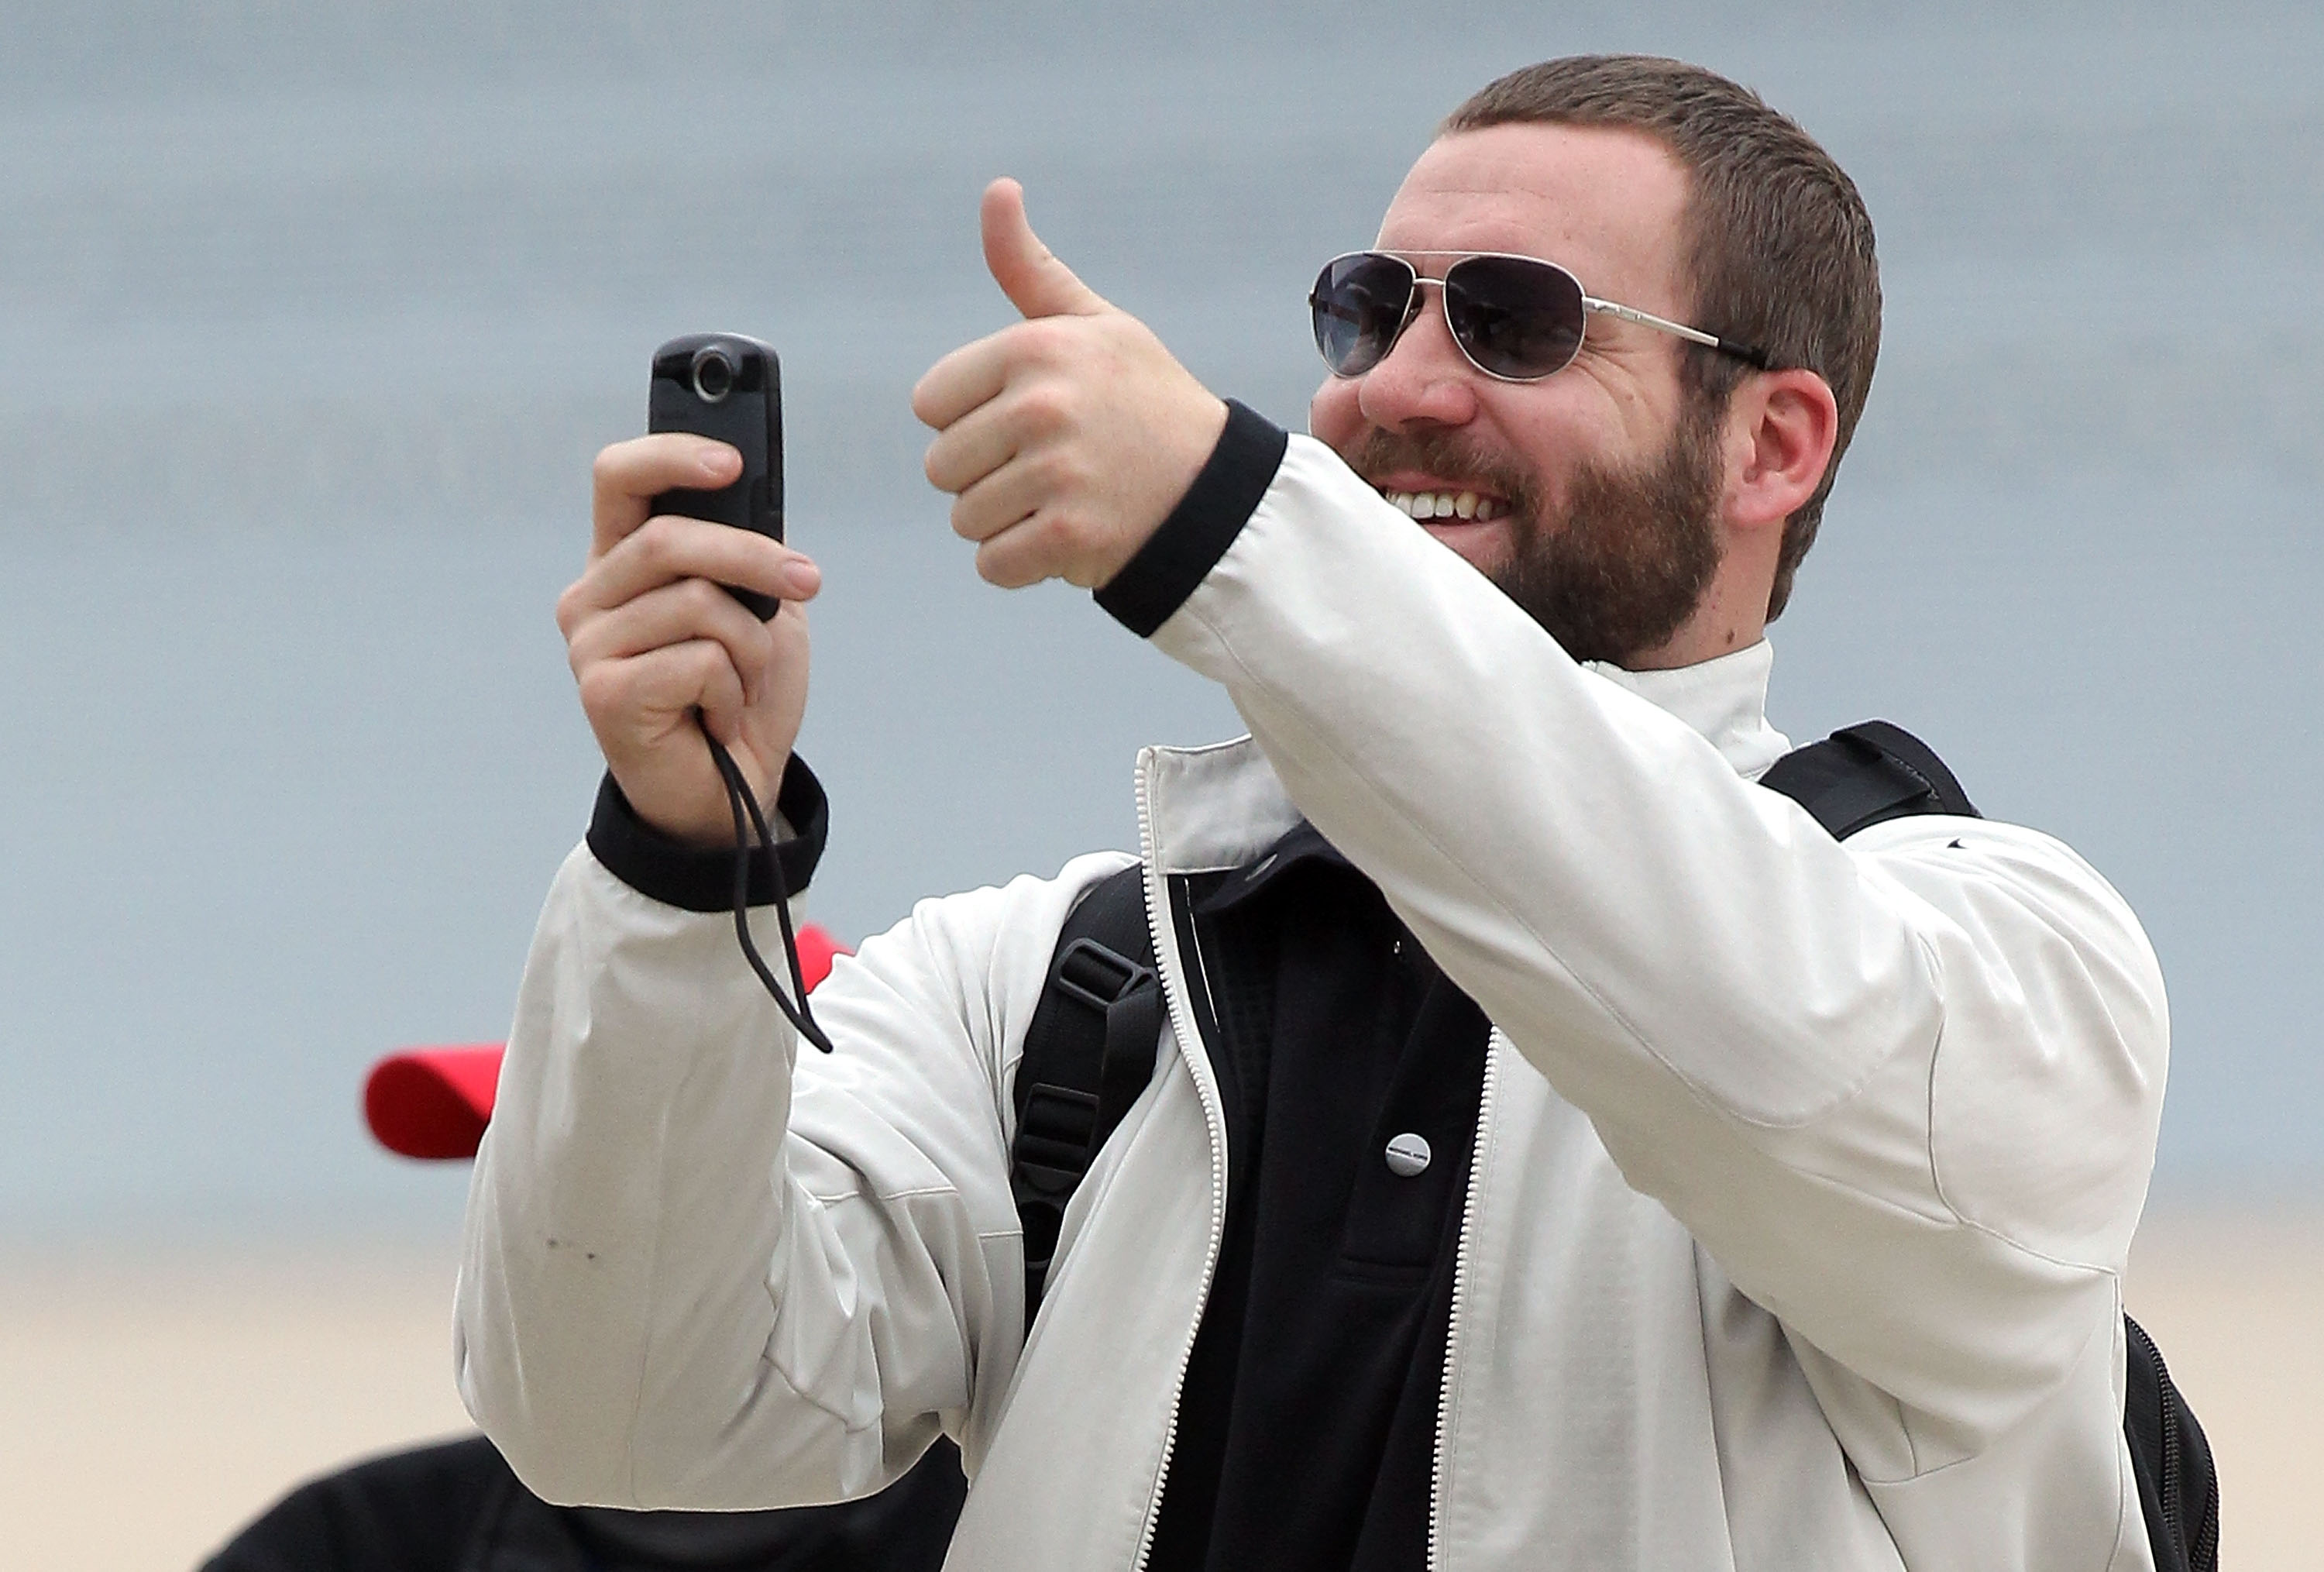 DALLAS, TX - JANUARY 31:  Quarterback Ben Roethlisberger #7 of the Pittsburgh Steelers records a video while arriving at Dallas Fort Worth International Airport on January 31, 2011 in Dallas, Texas.  The Pittsburgh Steelers will play the Green Bay Packers